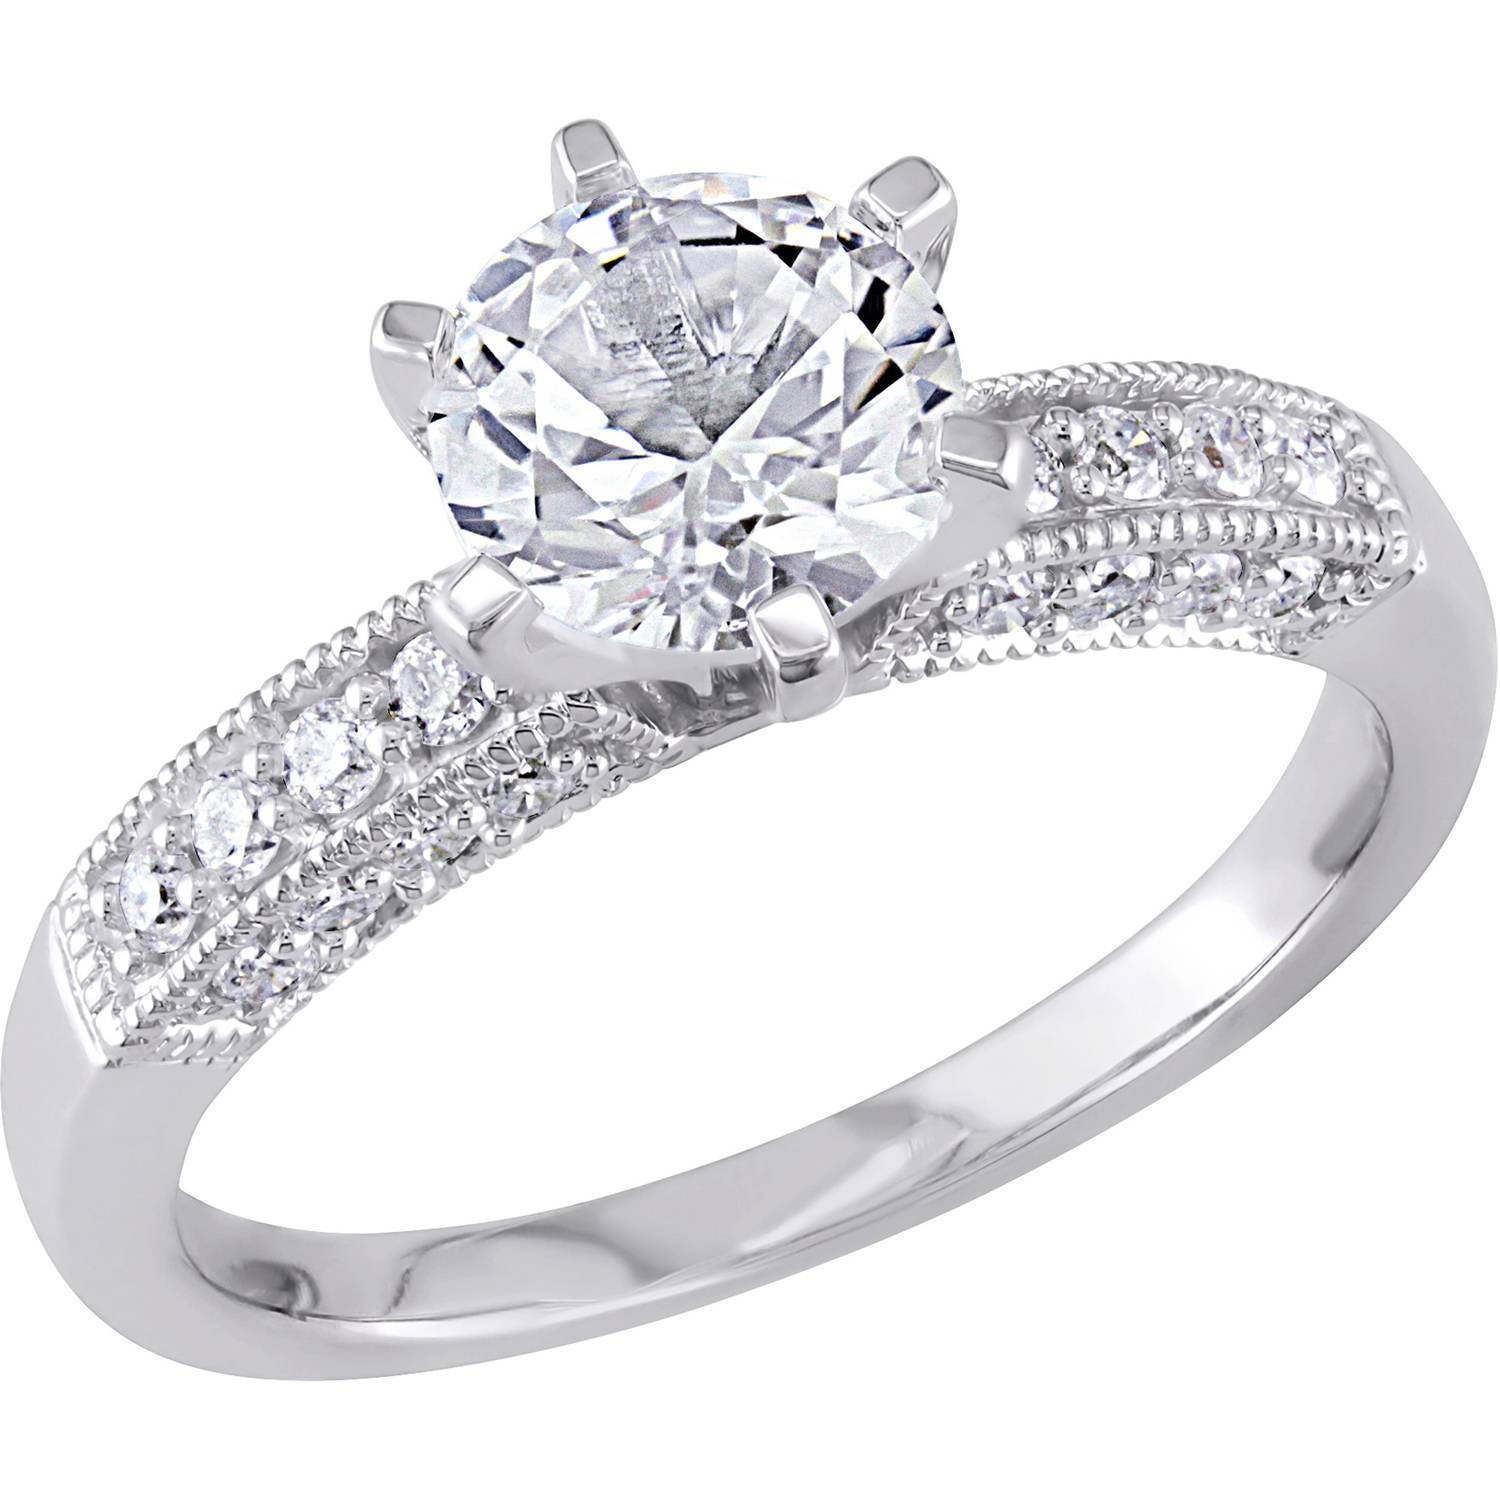 Photo Gallery Of White Gold Engagement Rings Viewing 14